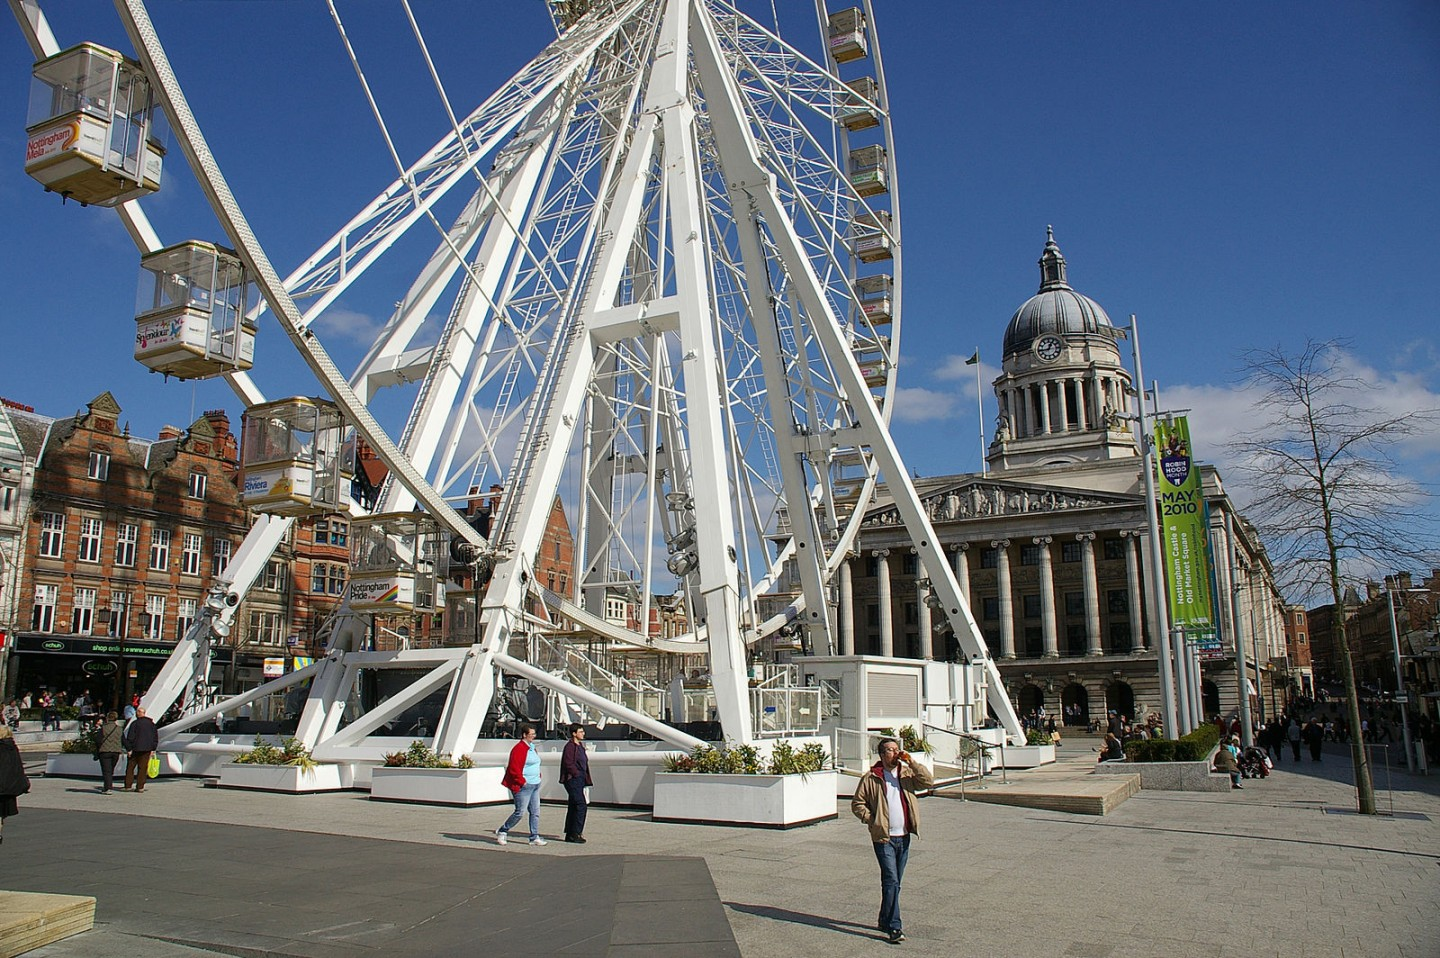 Nottingham is touted to be one of the best cities in the UK